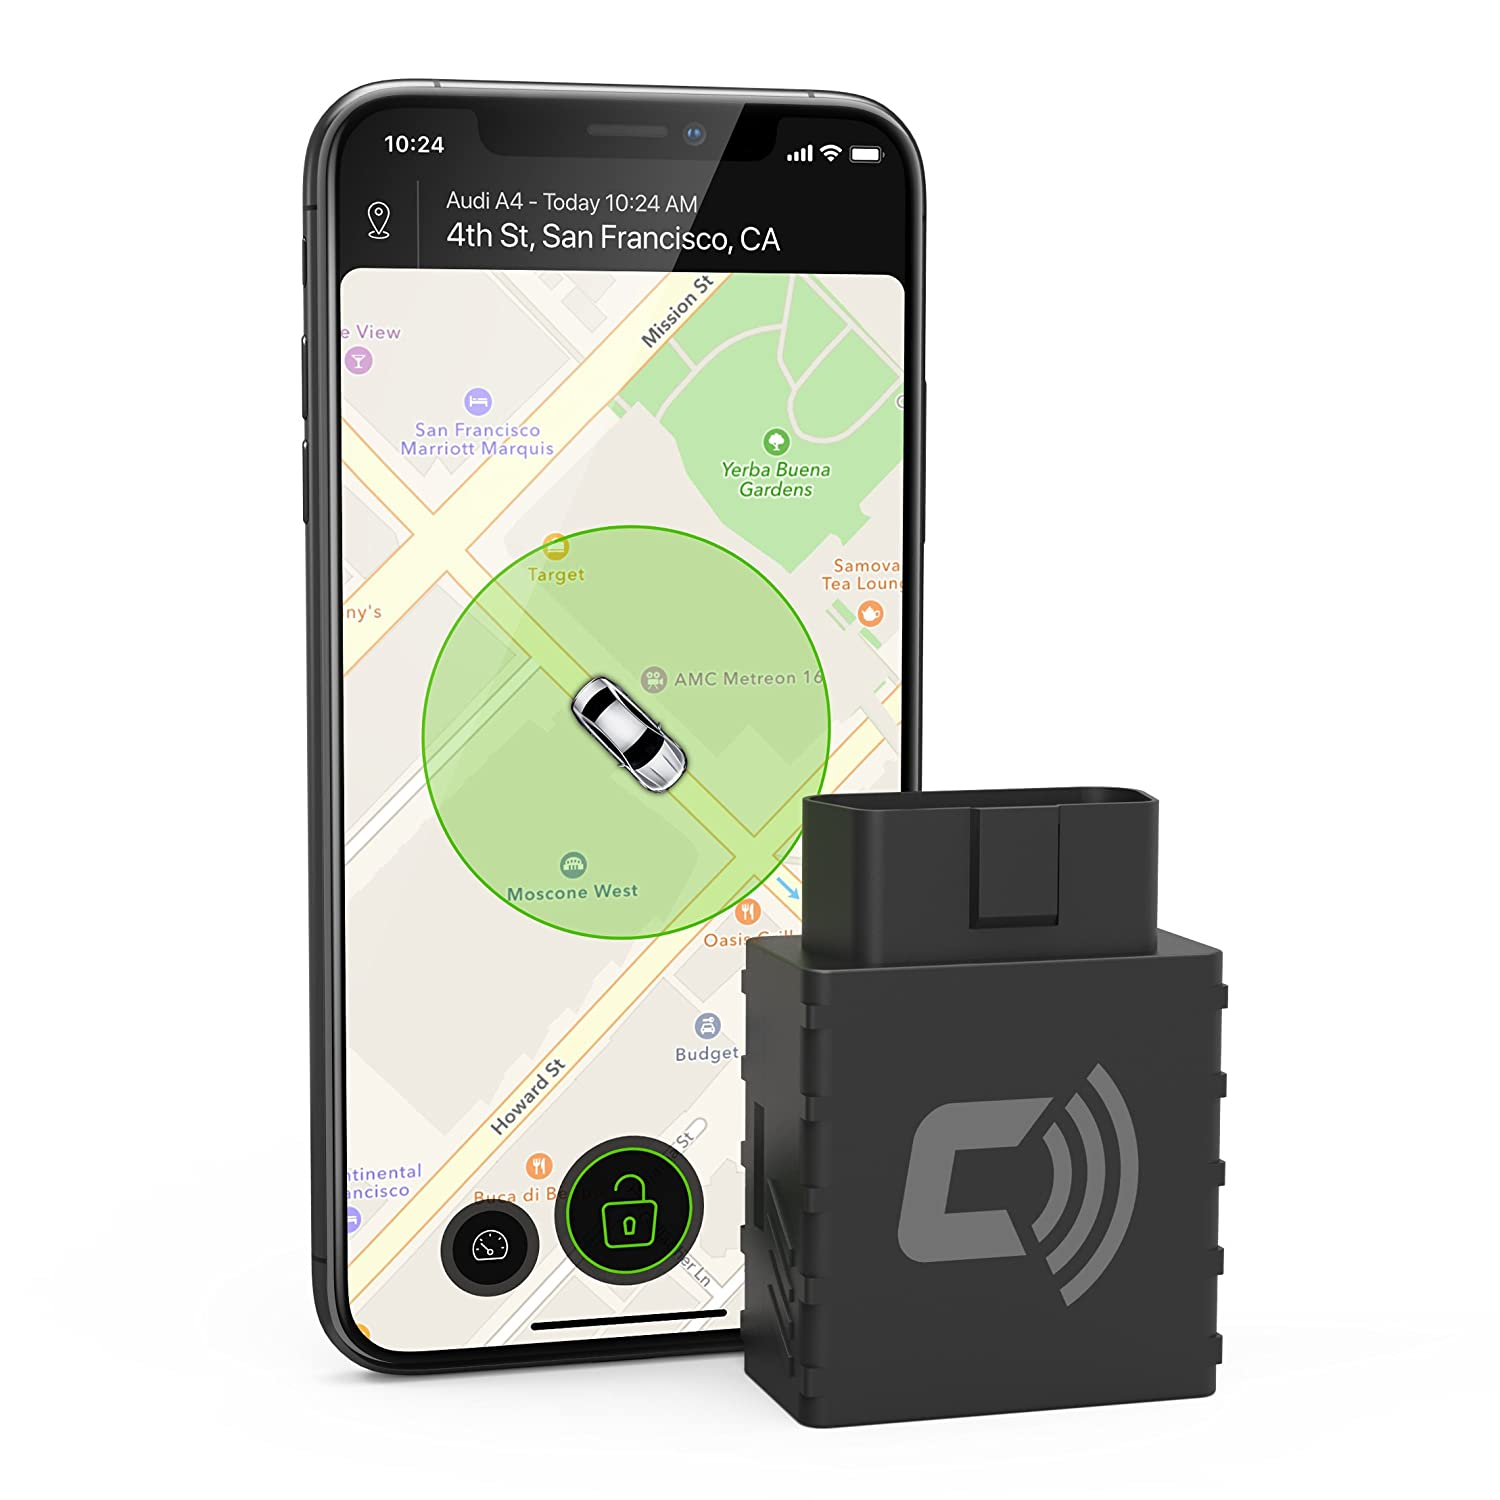 CarLock - 2nd Gen Advanced Real Time 3G Car Tracker & Alert System. Comes with Device & Phone App. Easily Tracks Your Car in Real Time & Notifies You ...